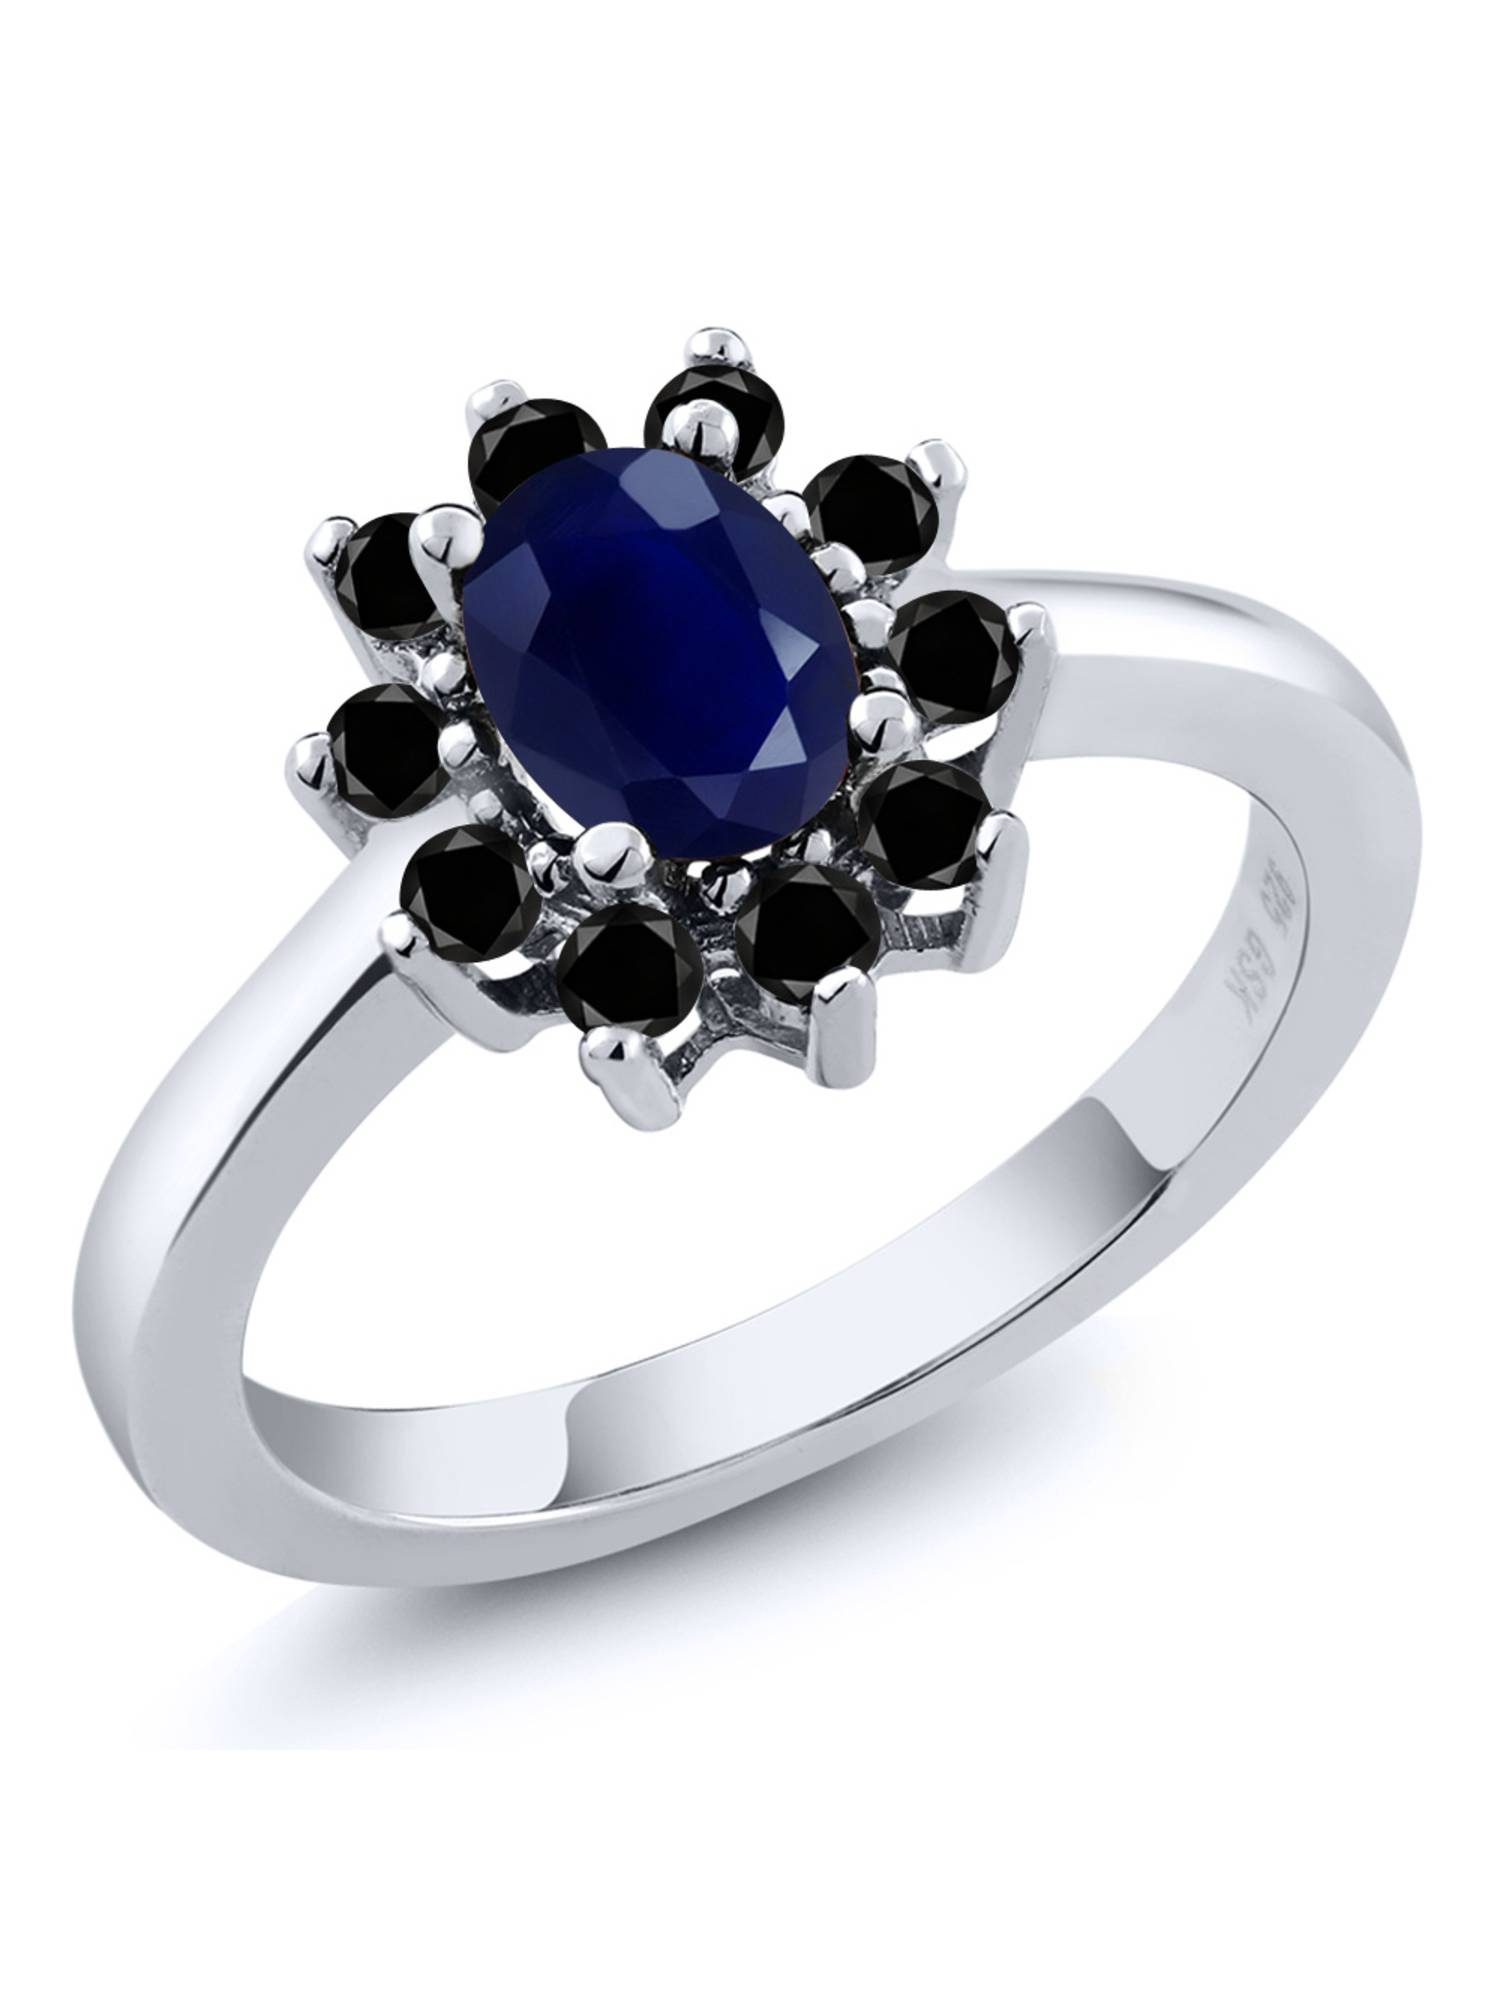 1.35 Ct Oval Blue Sapphire Black Diamond 925 Sterling Silver Ring by